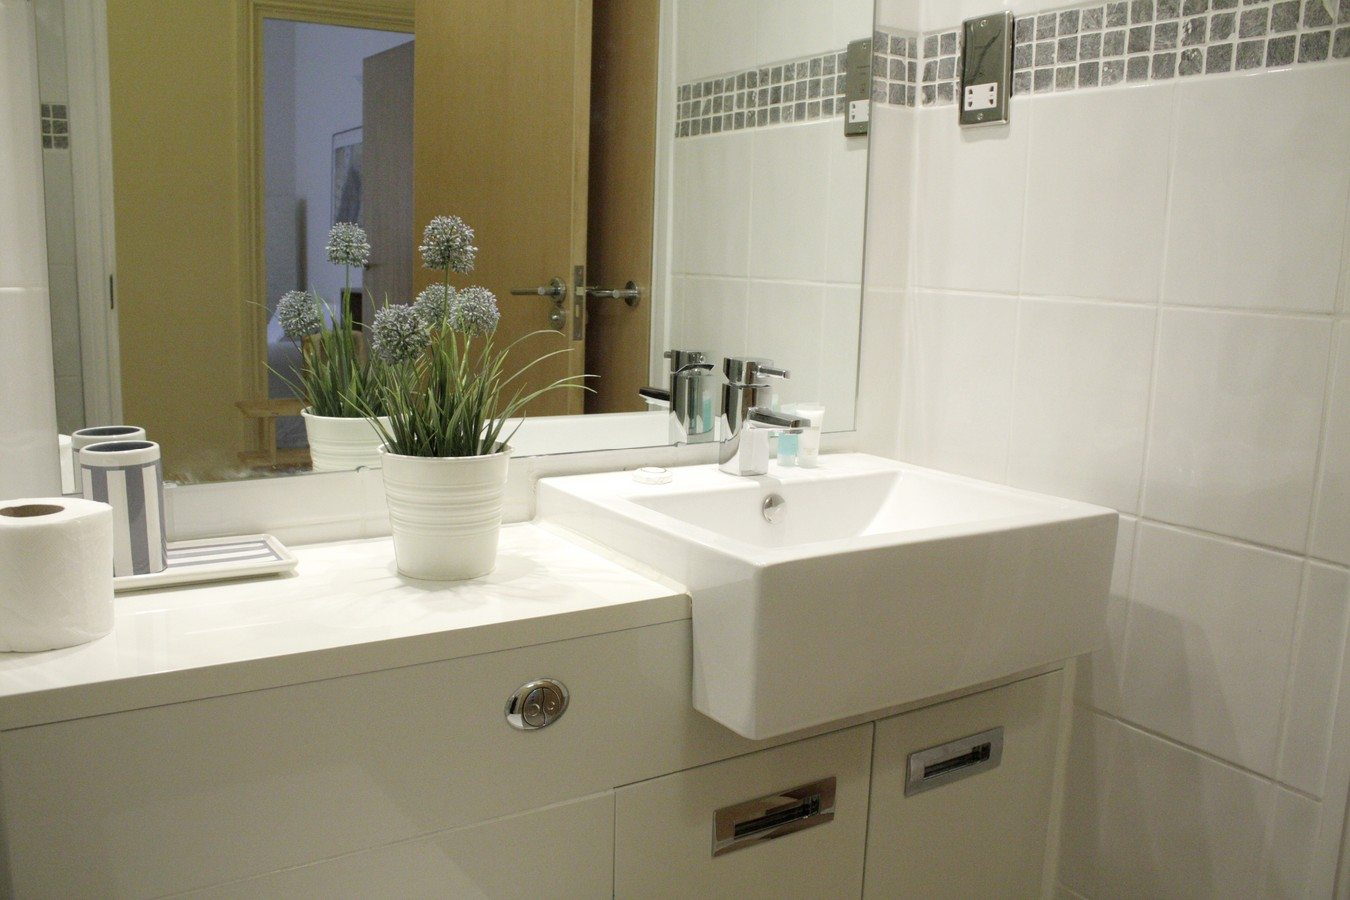 Liverpool Street Serviced Apartments London - Astral House Modern Bathroom | Urban Stay